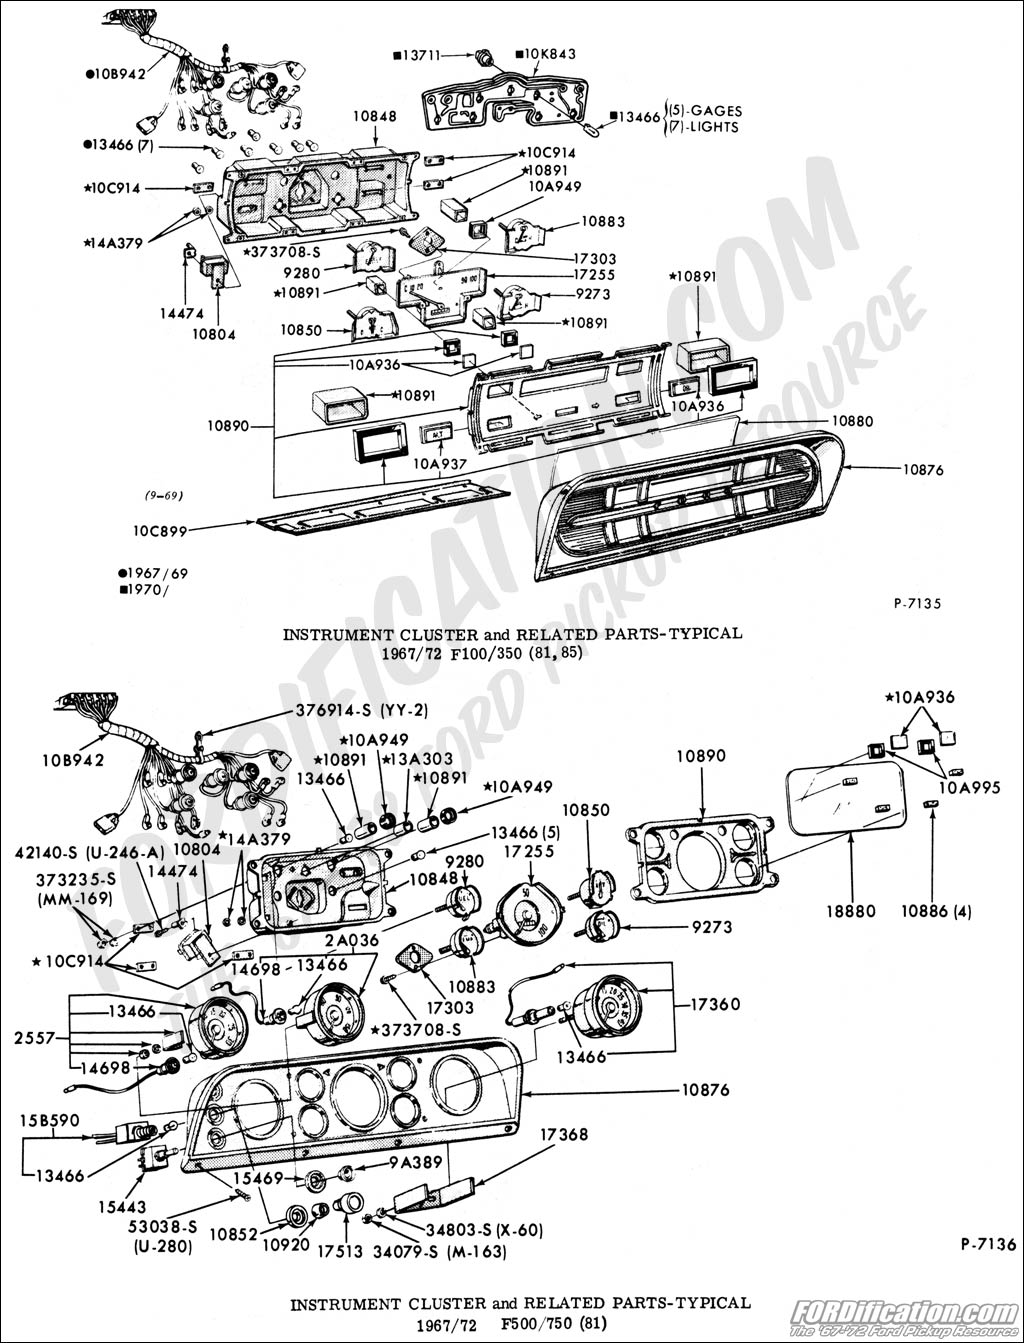 1975 ford f250 wiring diagram electric light truck part numbers instrument panel and related